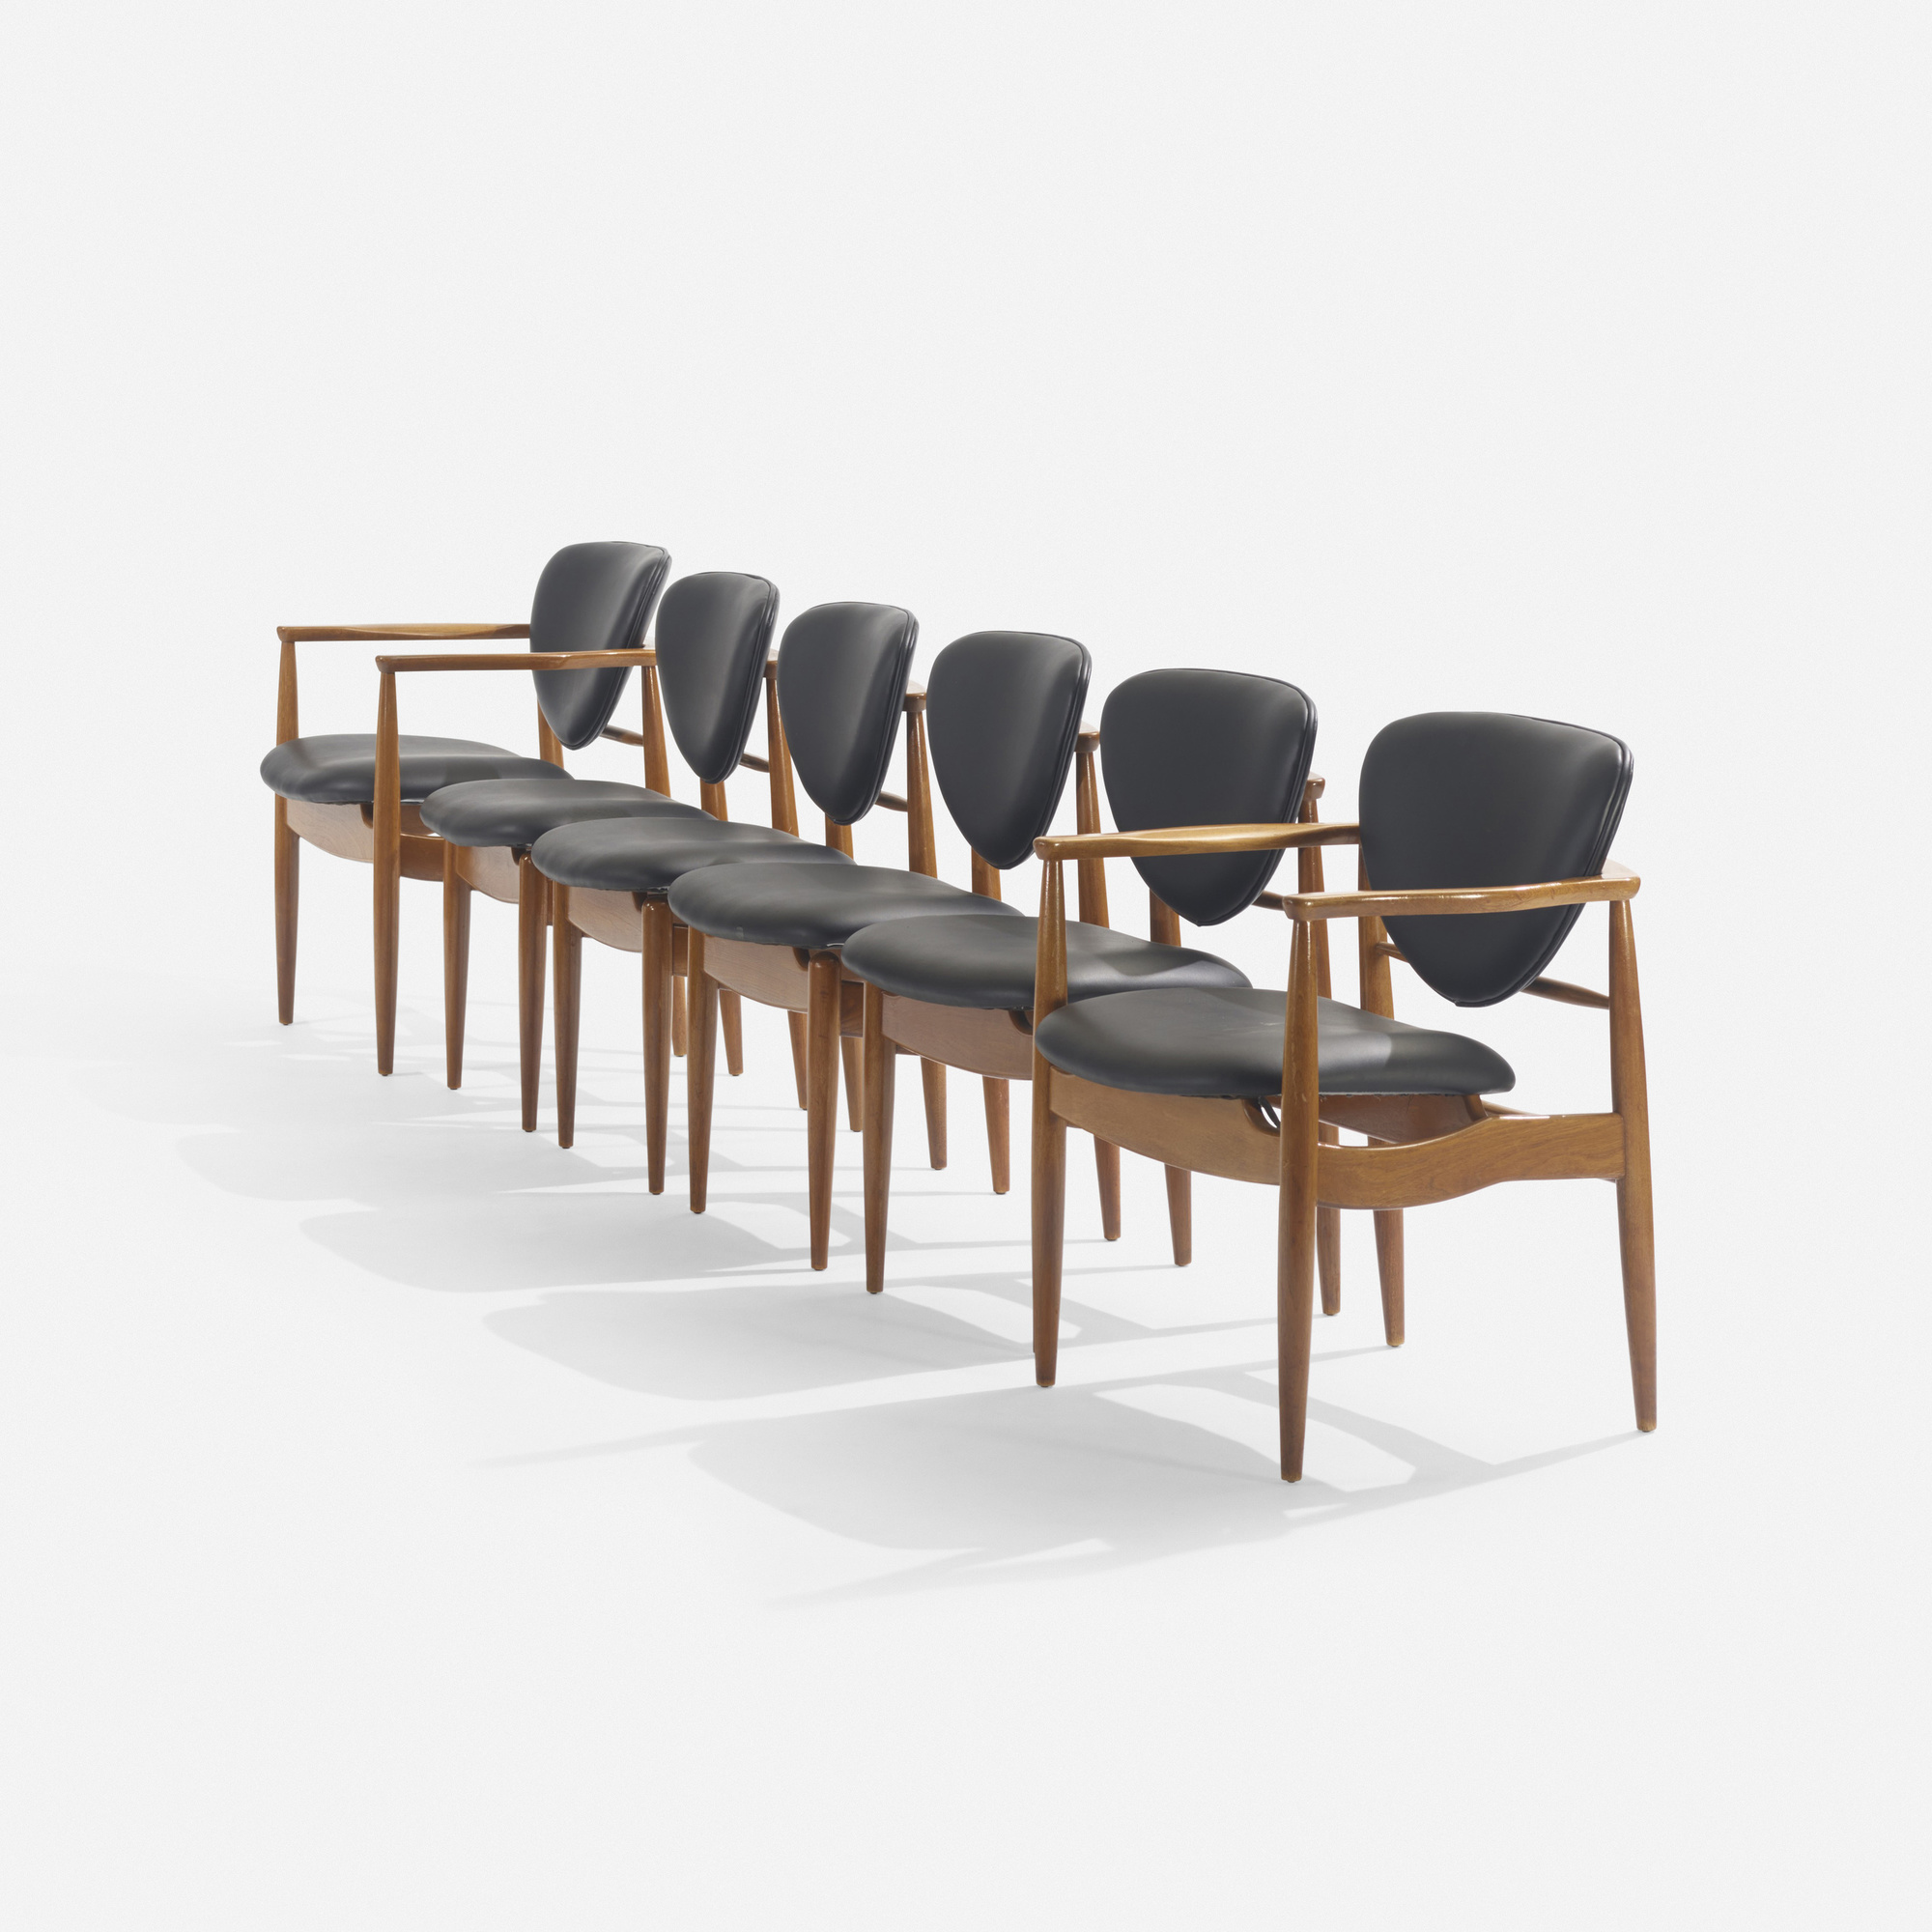 135: In the manner of Finn Juhl / dining chairs, set of six (2 of 2)